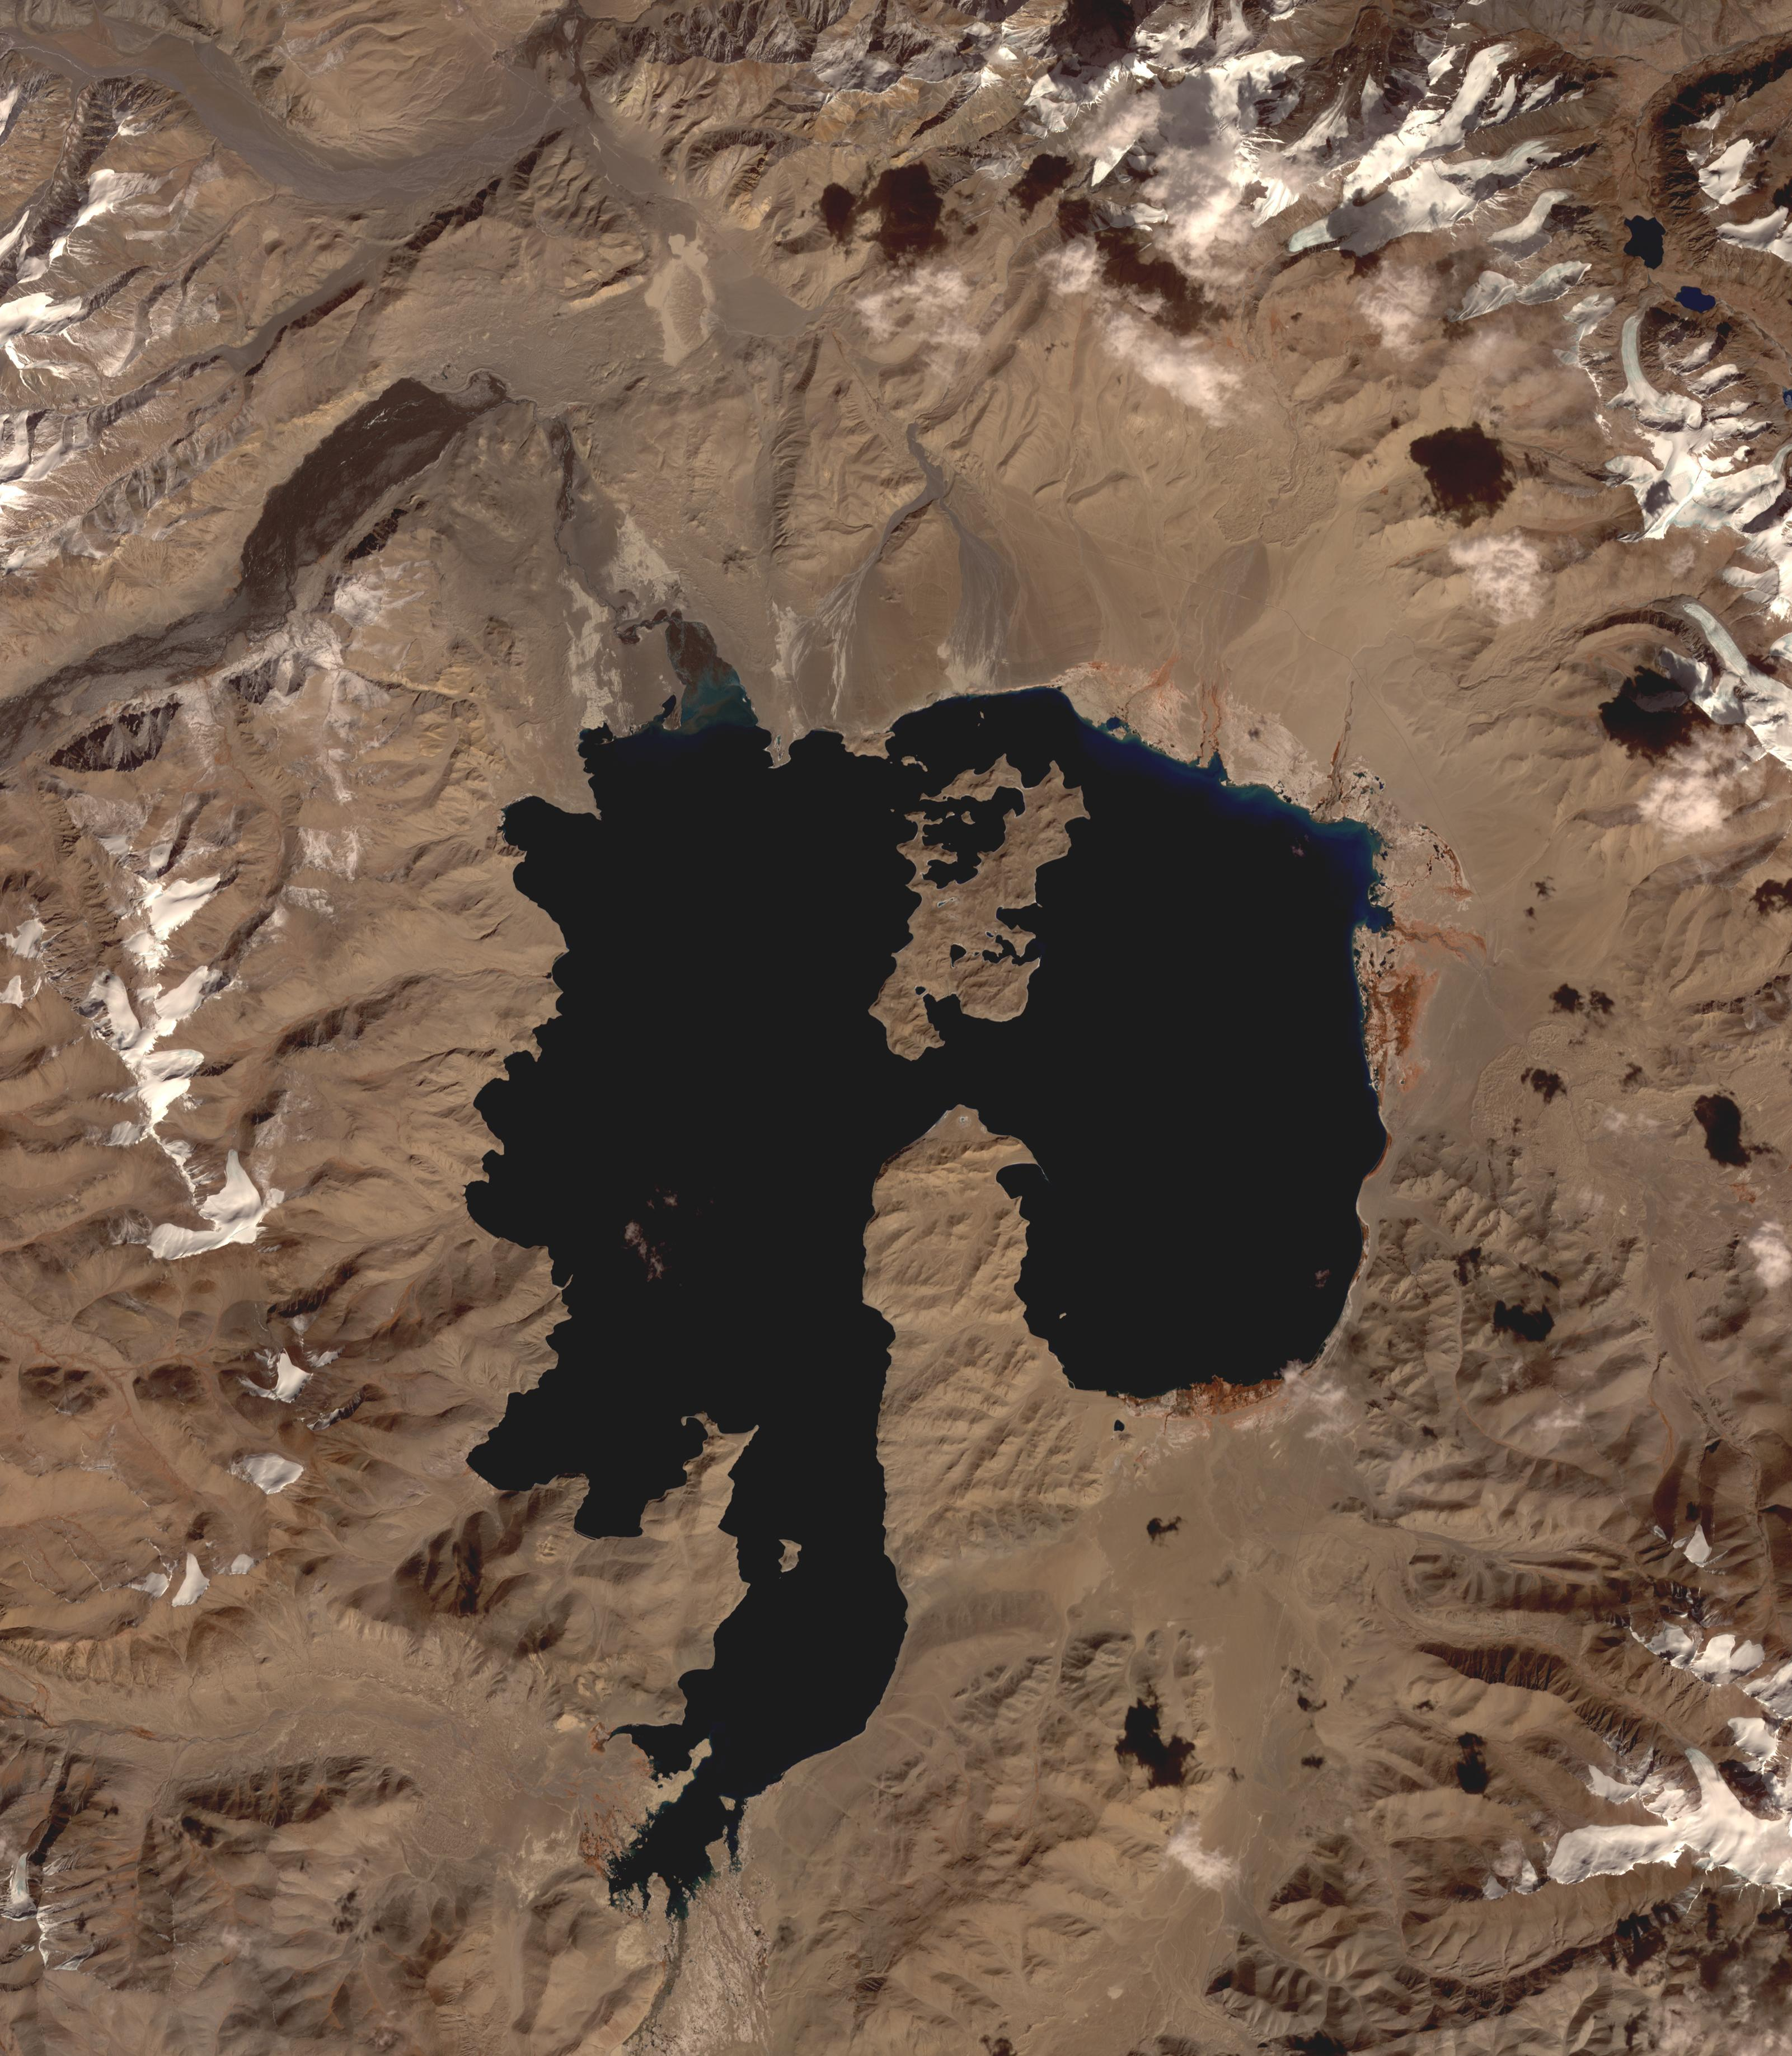 NASAs Terra spacecraft shows Lake Karakul in northeast Tajikistan, a hypersaline lake with no external drainage, receiving less than 3 cm precipitation per year.